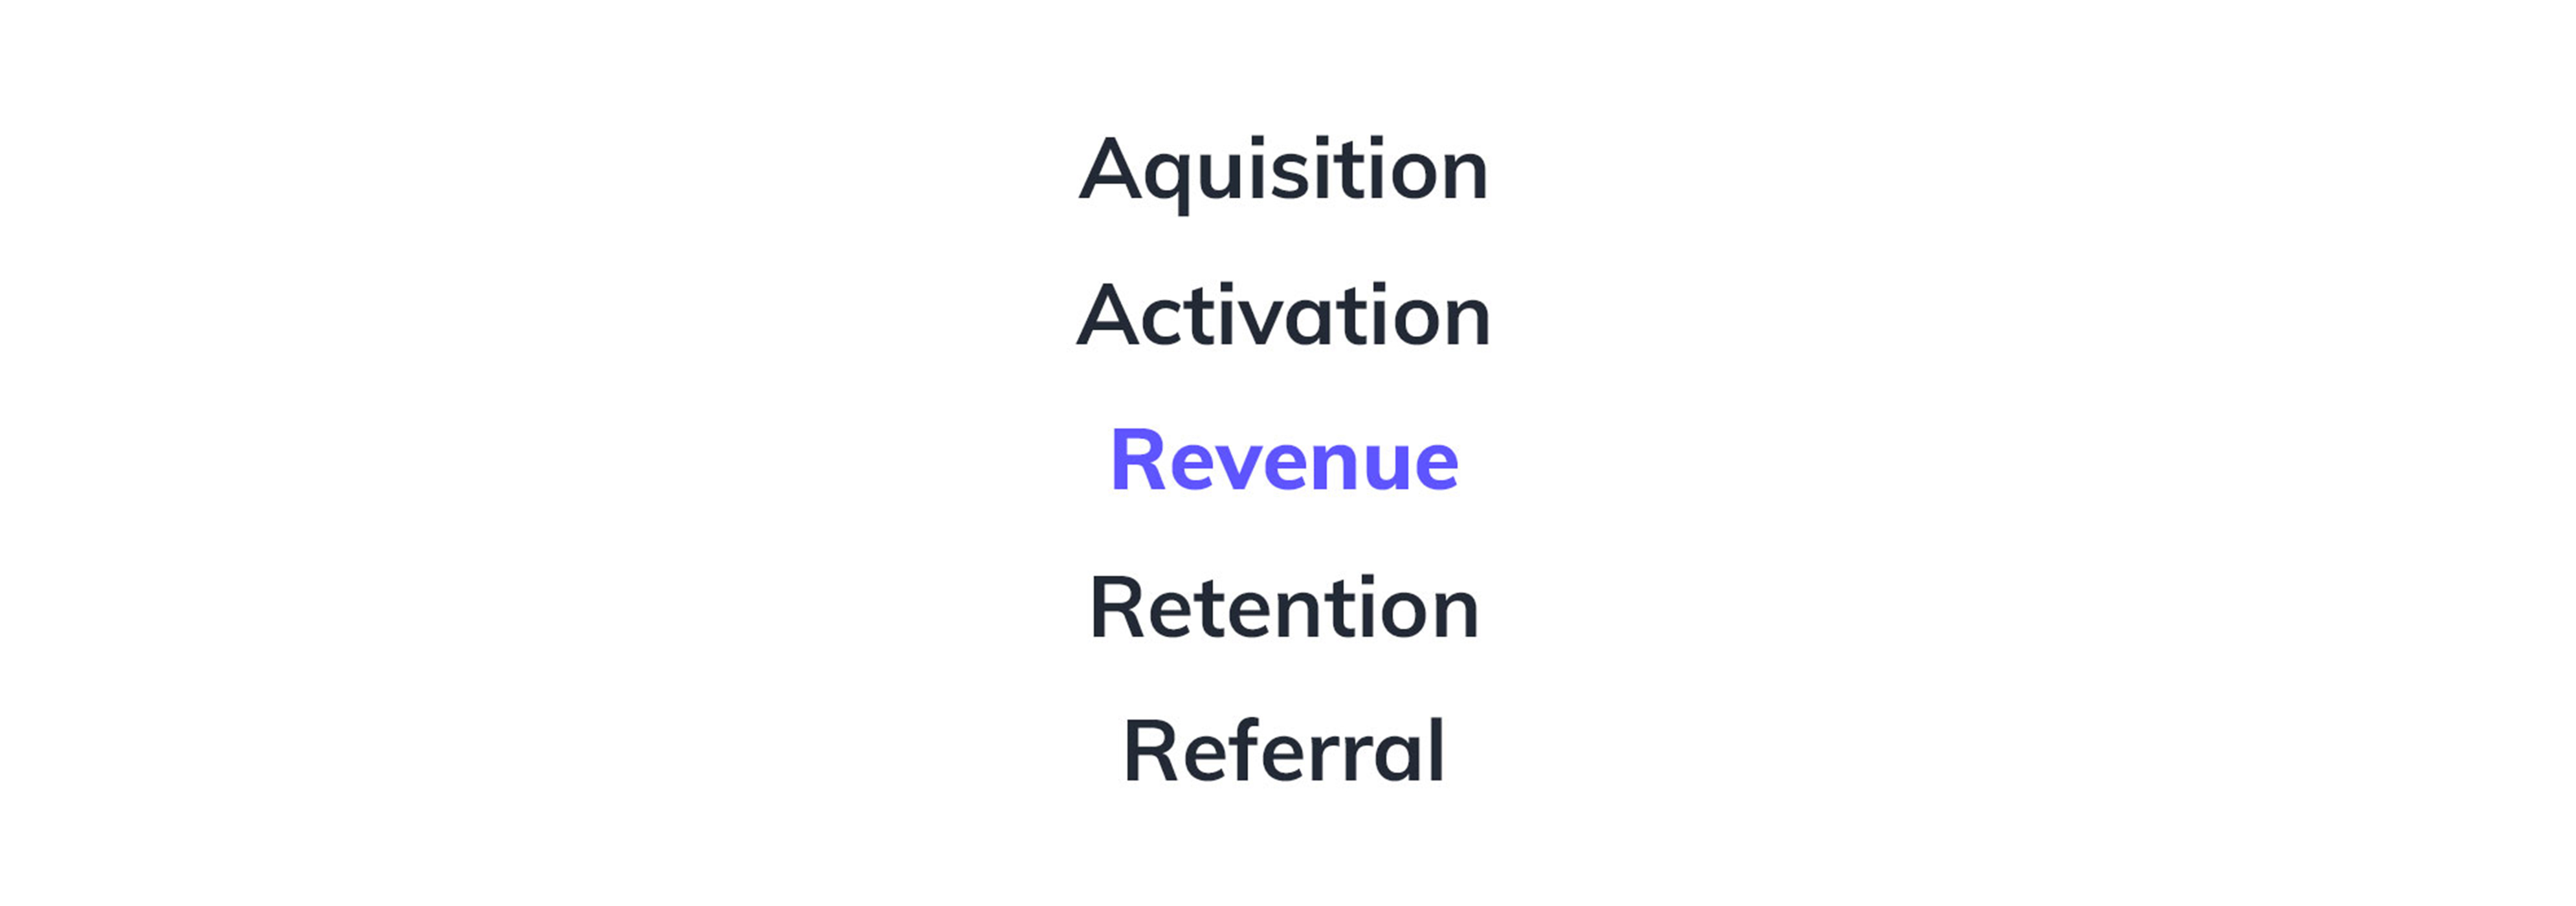 This is an image showing the list of pirate metrics rearranged to read acquisition activation revenue retention referral.